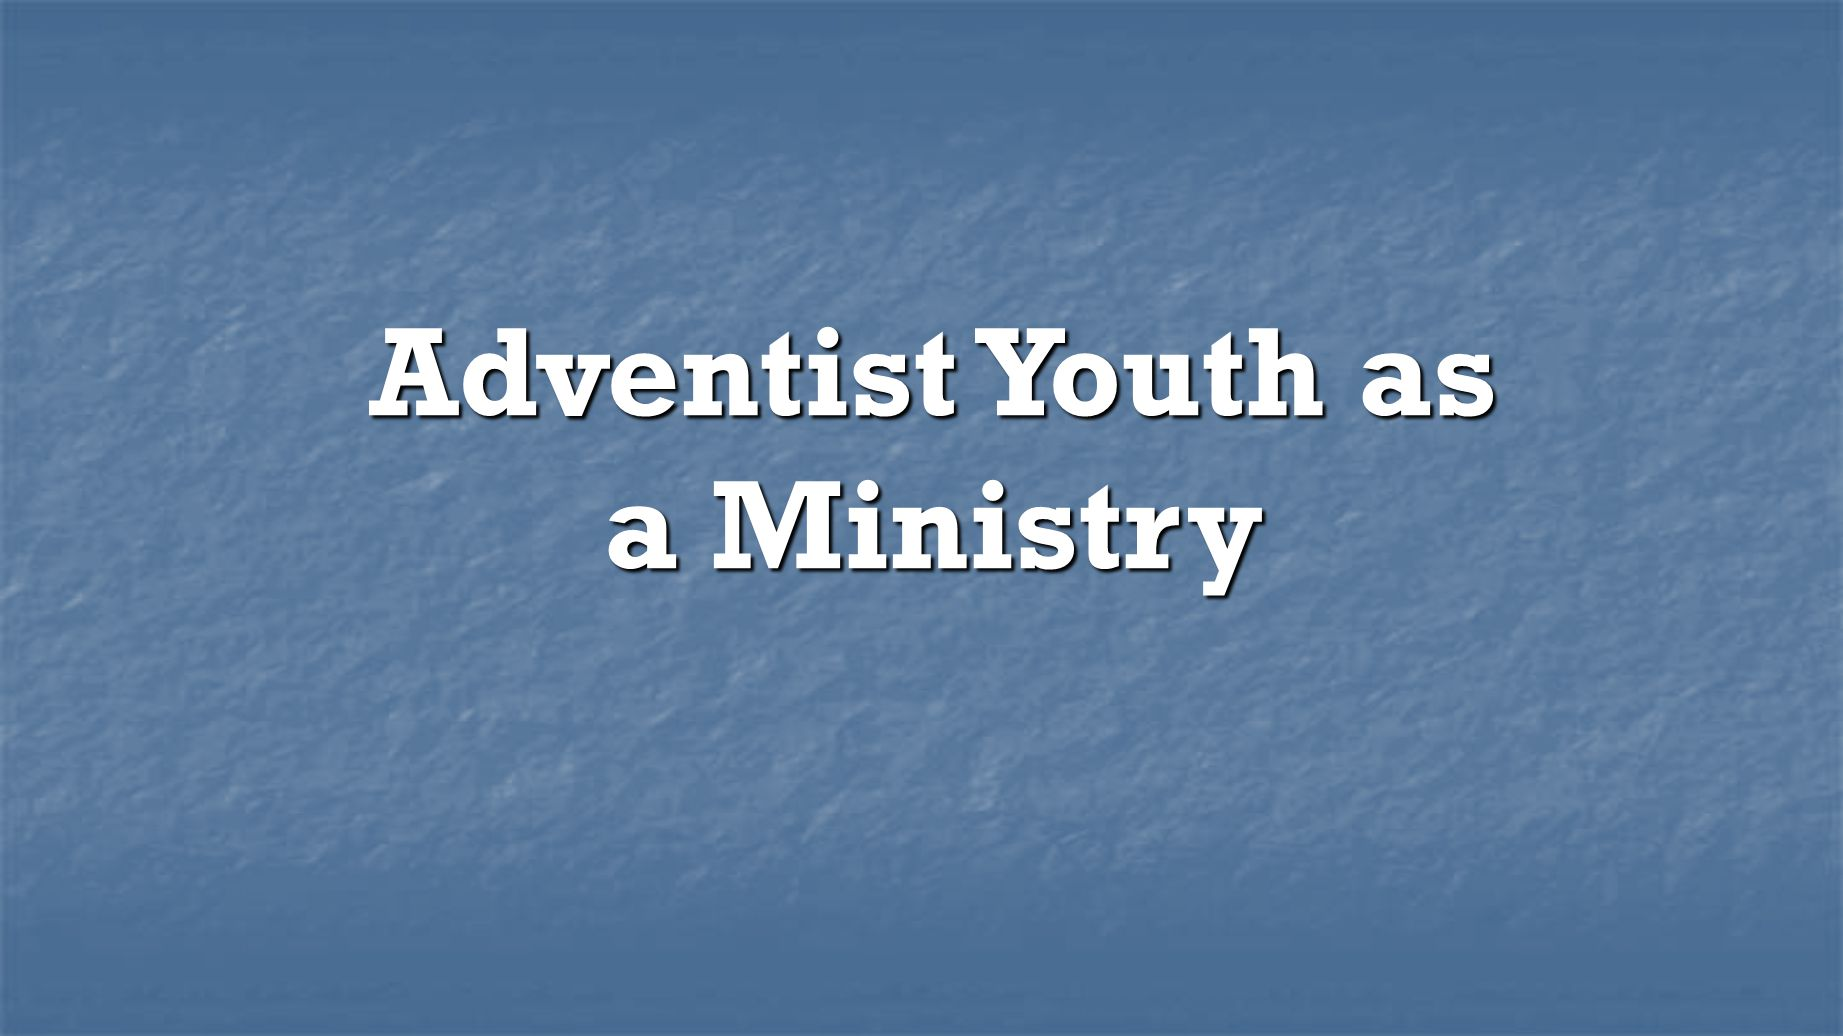 Adventist Youth as a Ministry